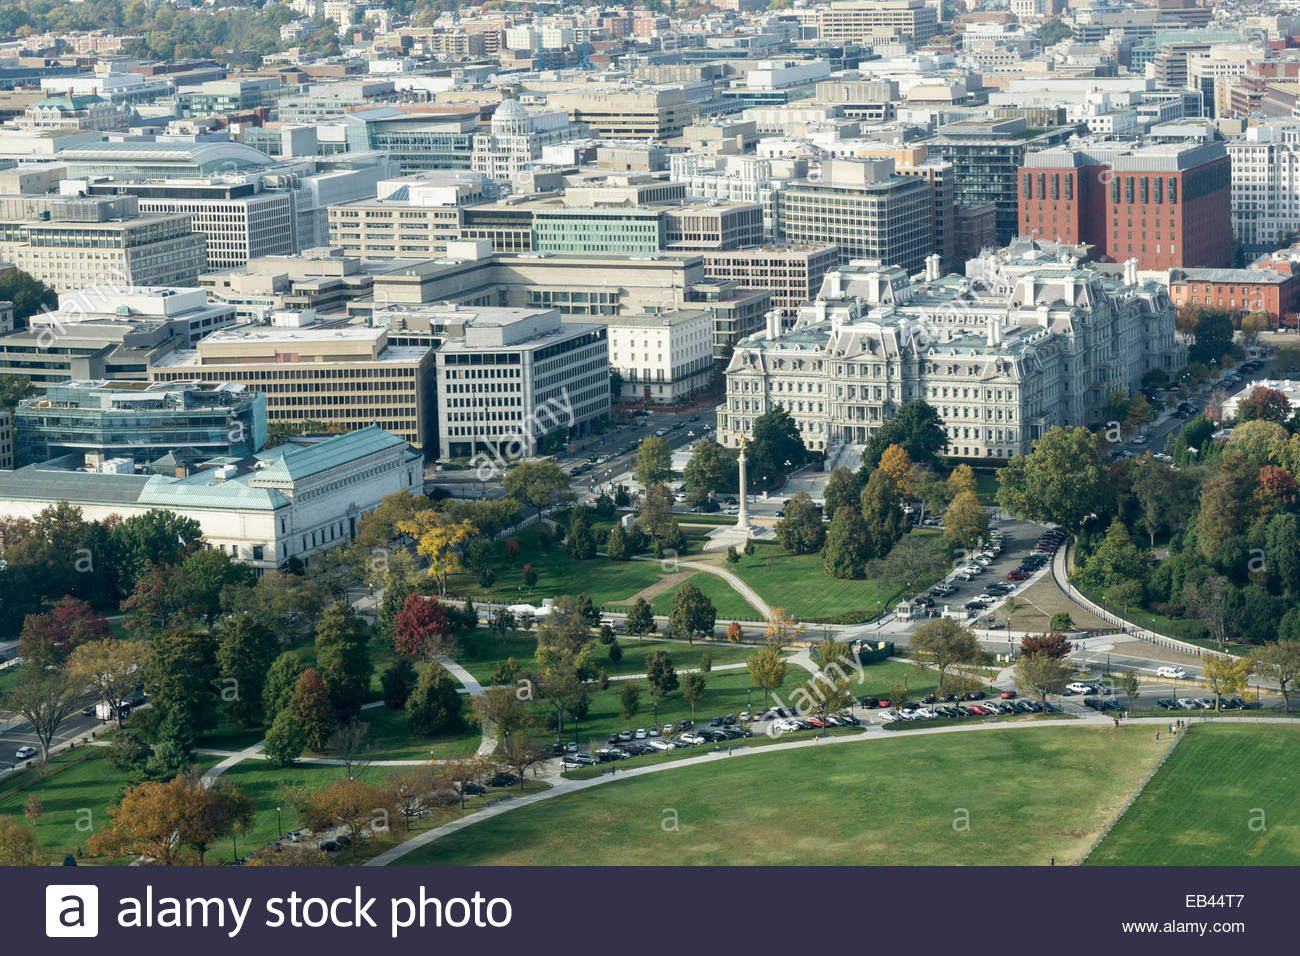 Executive Office View aerial view of the old and new executive office buildings in stock